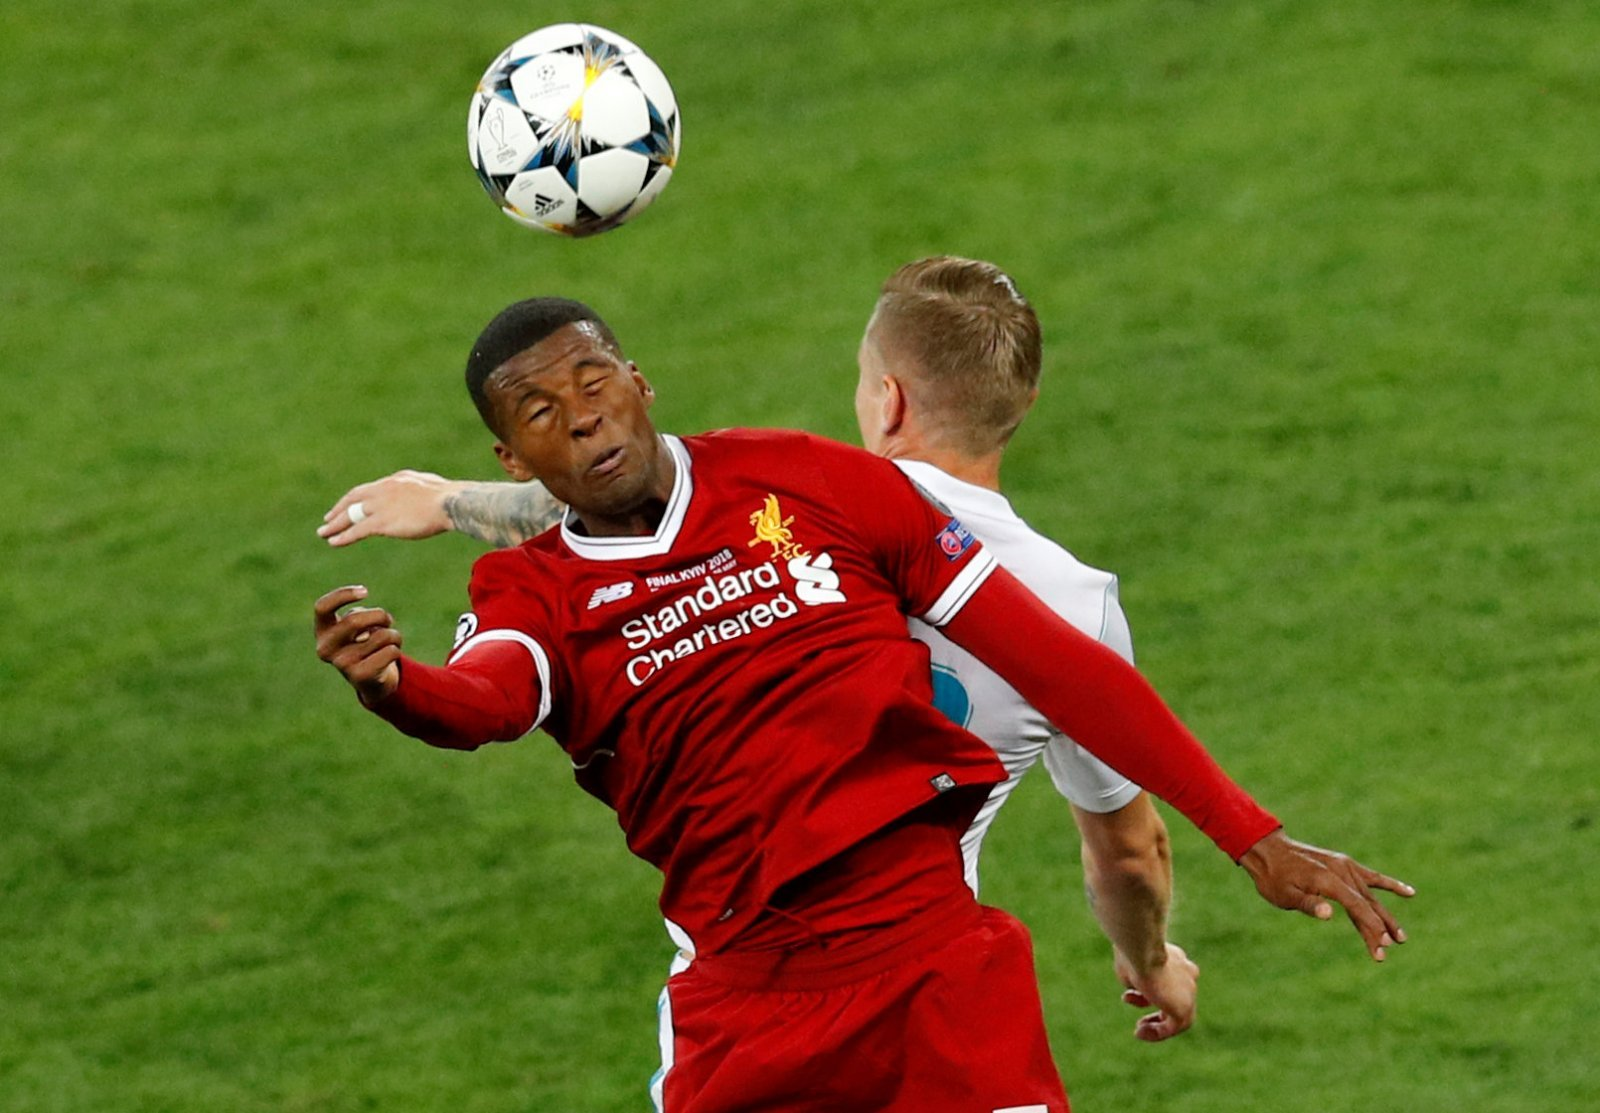 Liverpool fans on Twitter urge club not to sell Wijnaldum